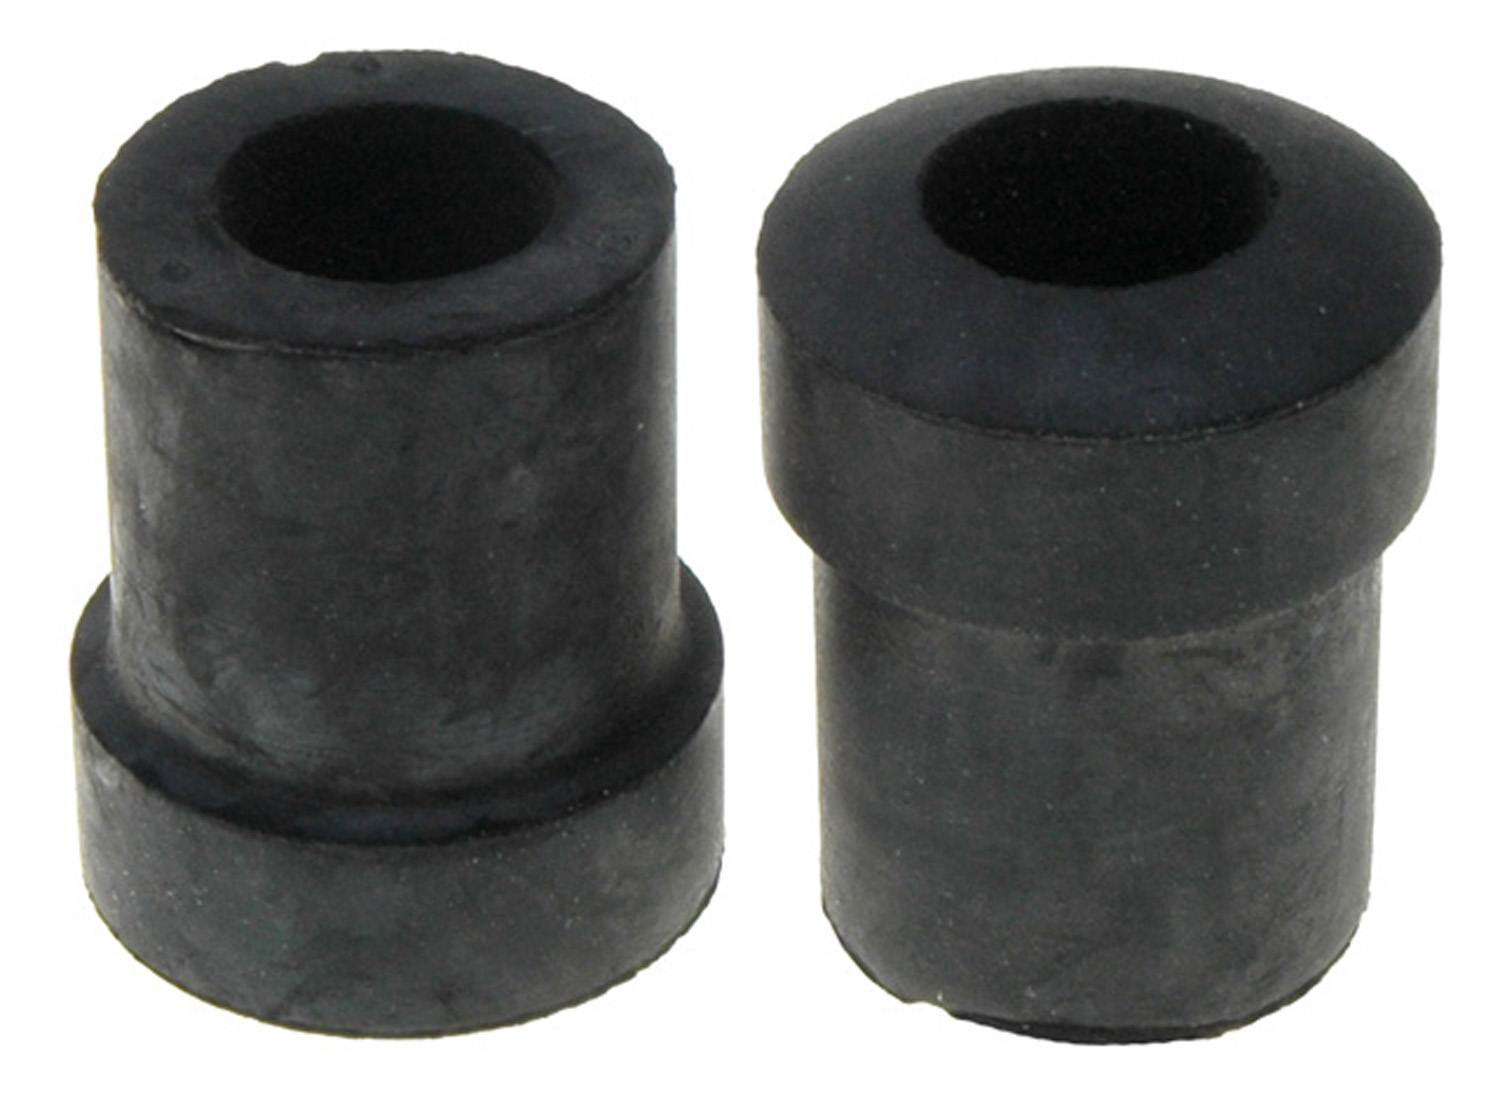 ACDELCO PROFESSIONAL - Leaf Spring Shackle Bushing - DCC 45G15399